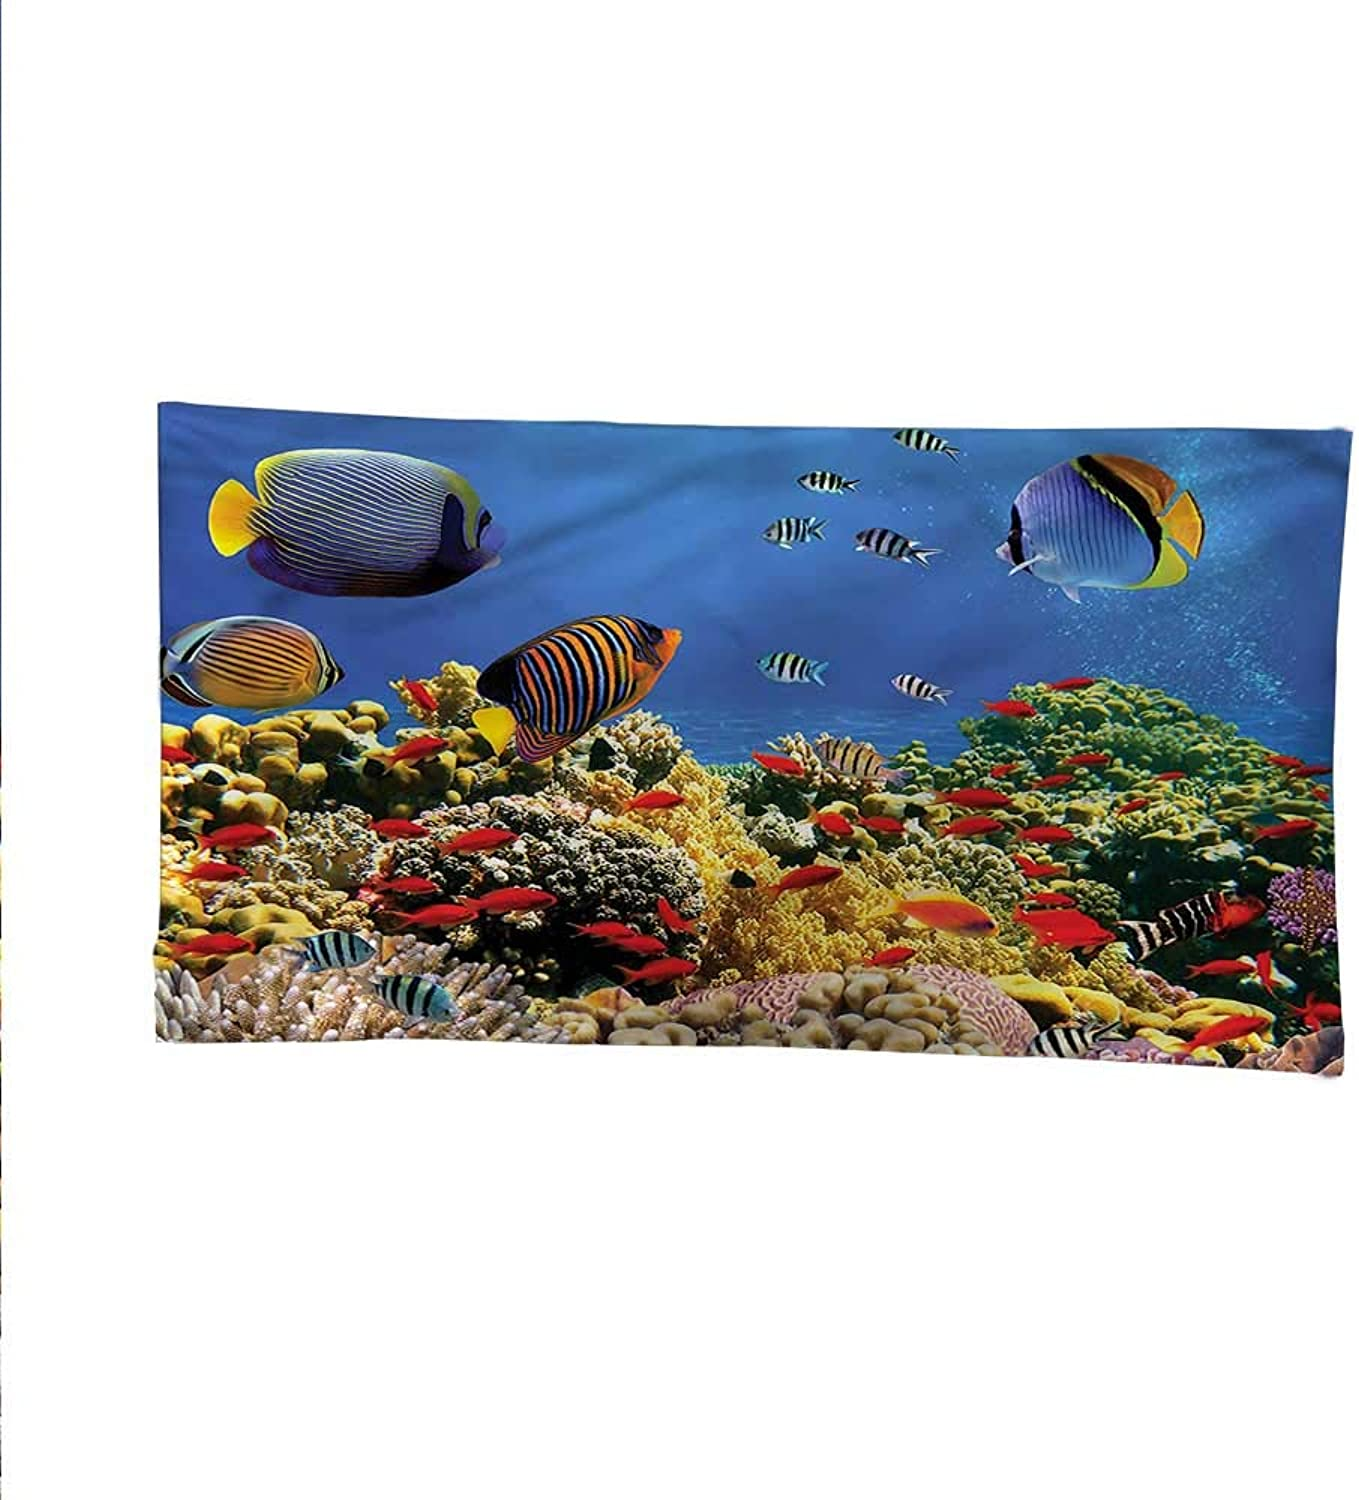 Oceantapestrywall tapestrySubmerged Coral Reef Colony 91W x 60L Inch